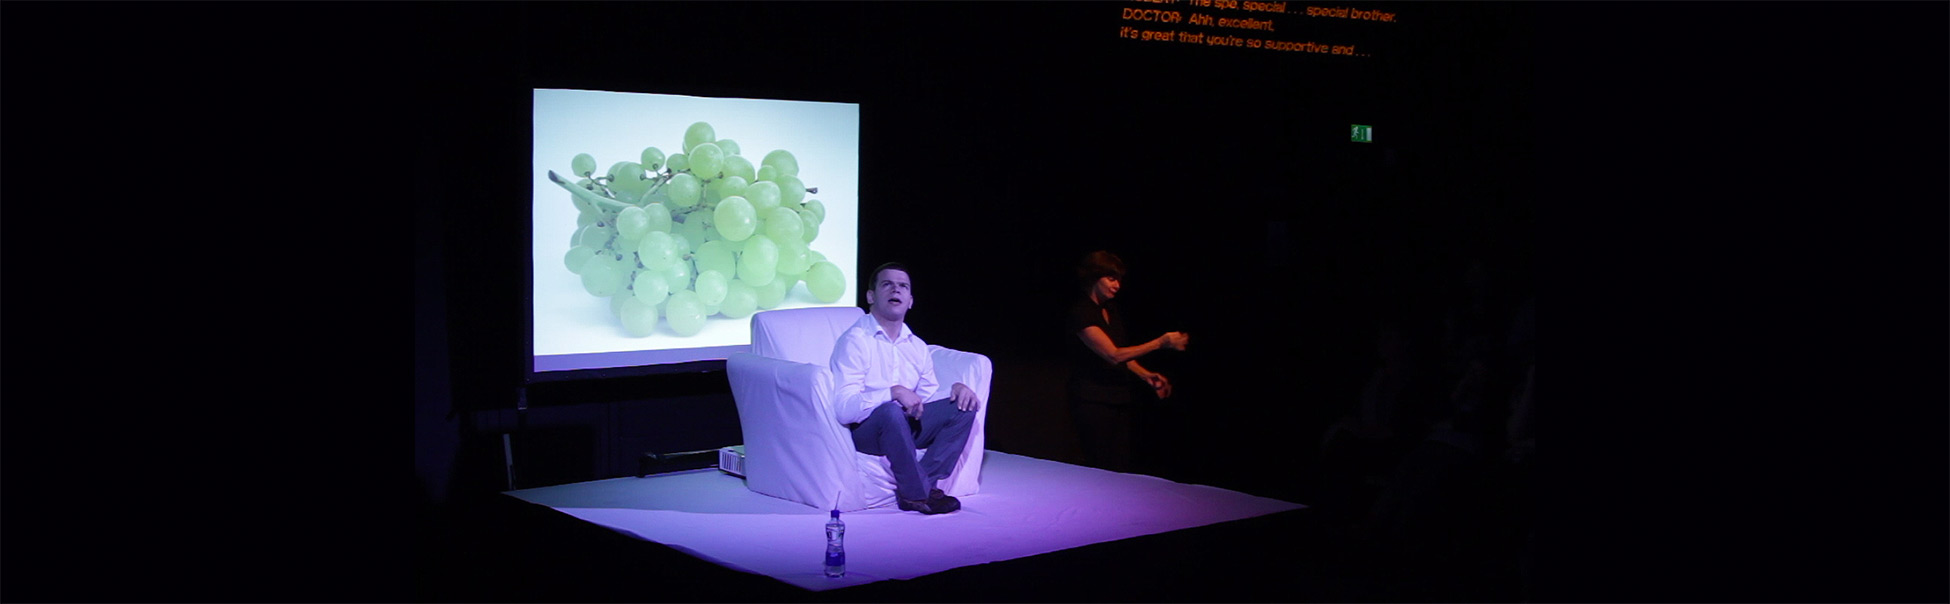 Robert Softley performing in If These Spasms Could Speak by Robert Softley/The Arches at Dublin Theatre Festival 2014